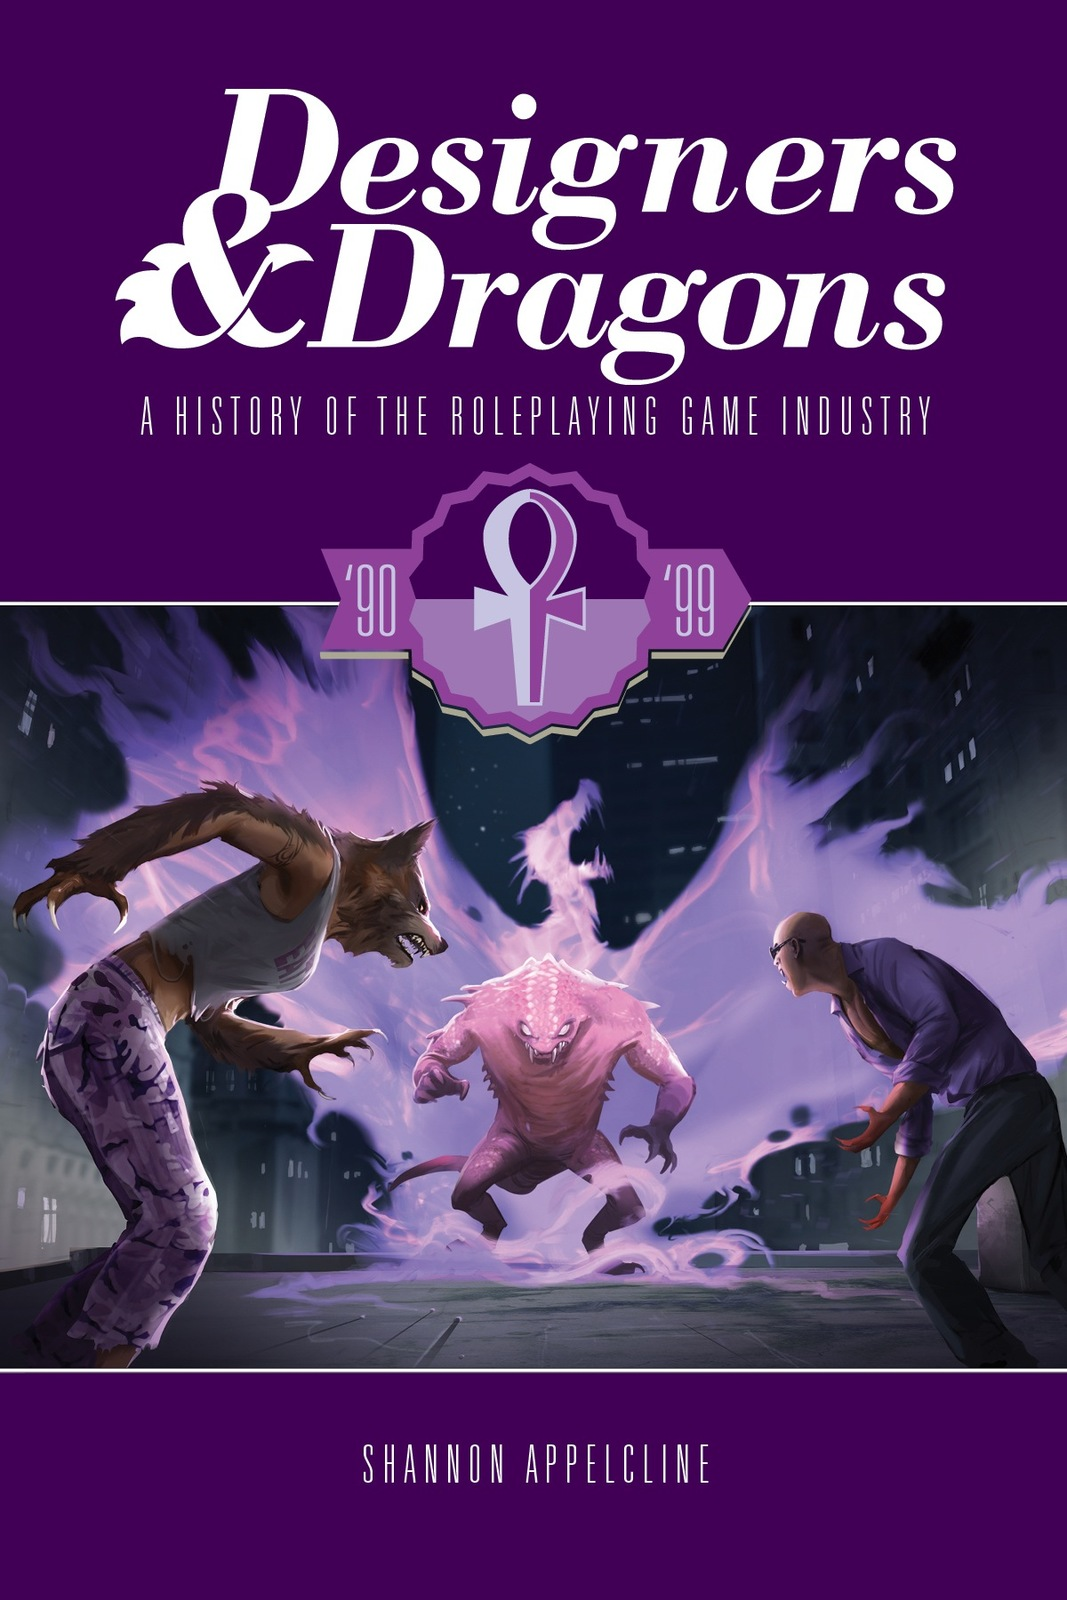 Designers and Dragons: The 90`s image